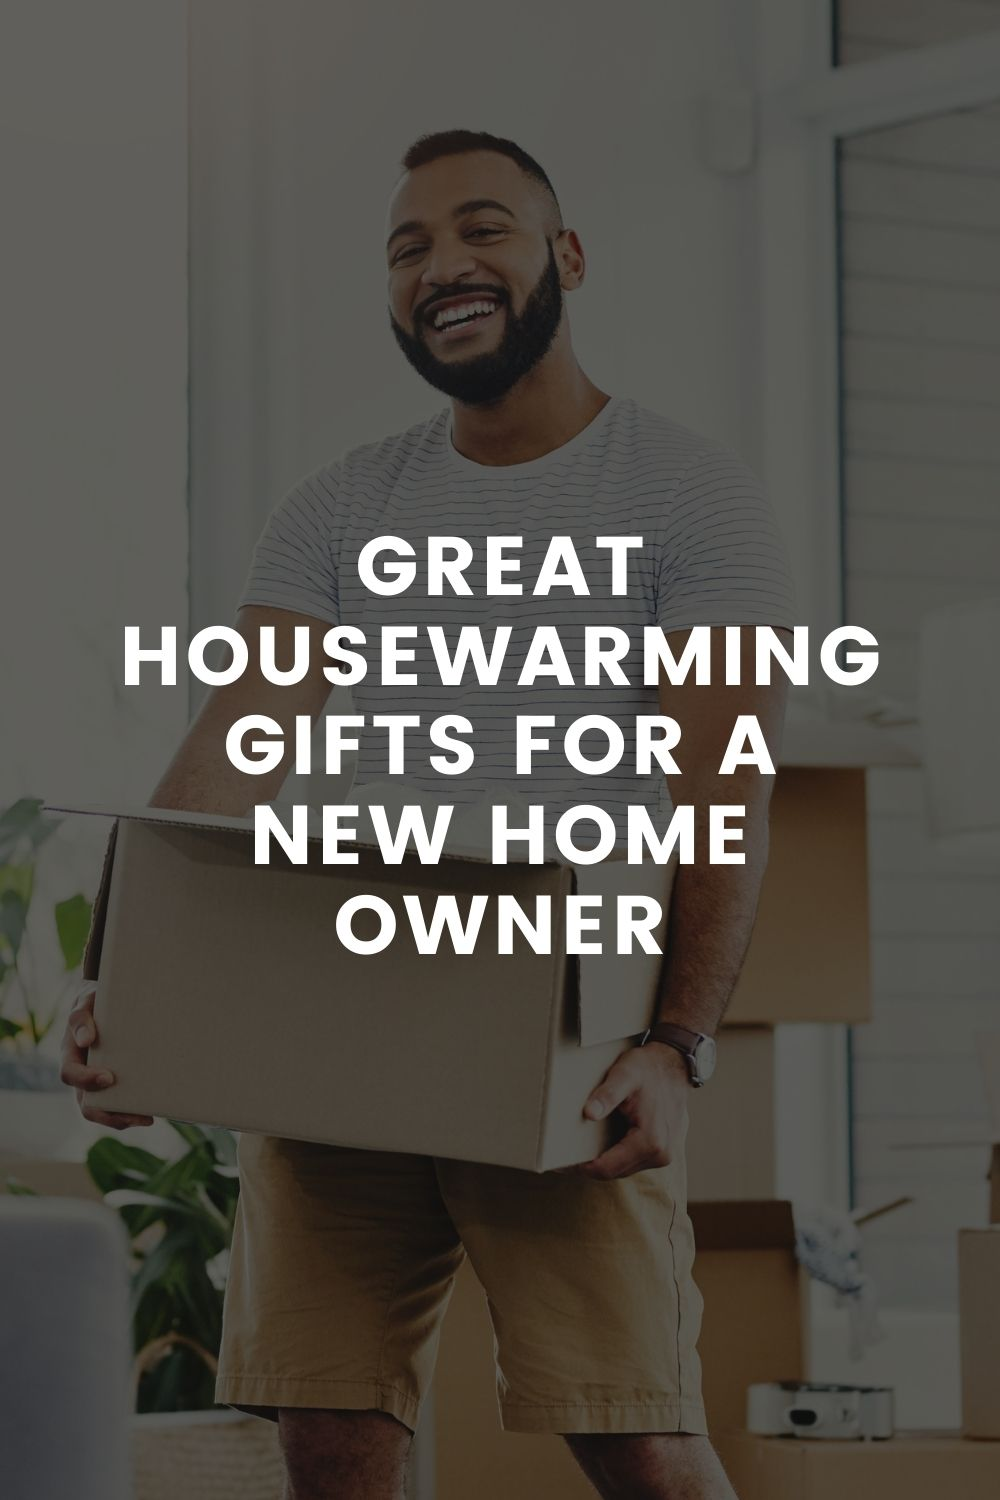 Great Housewarming Gifts For a New Home Owner